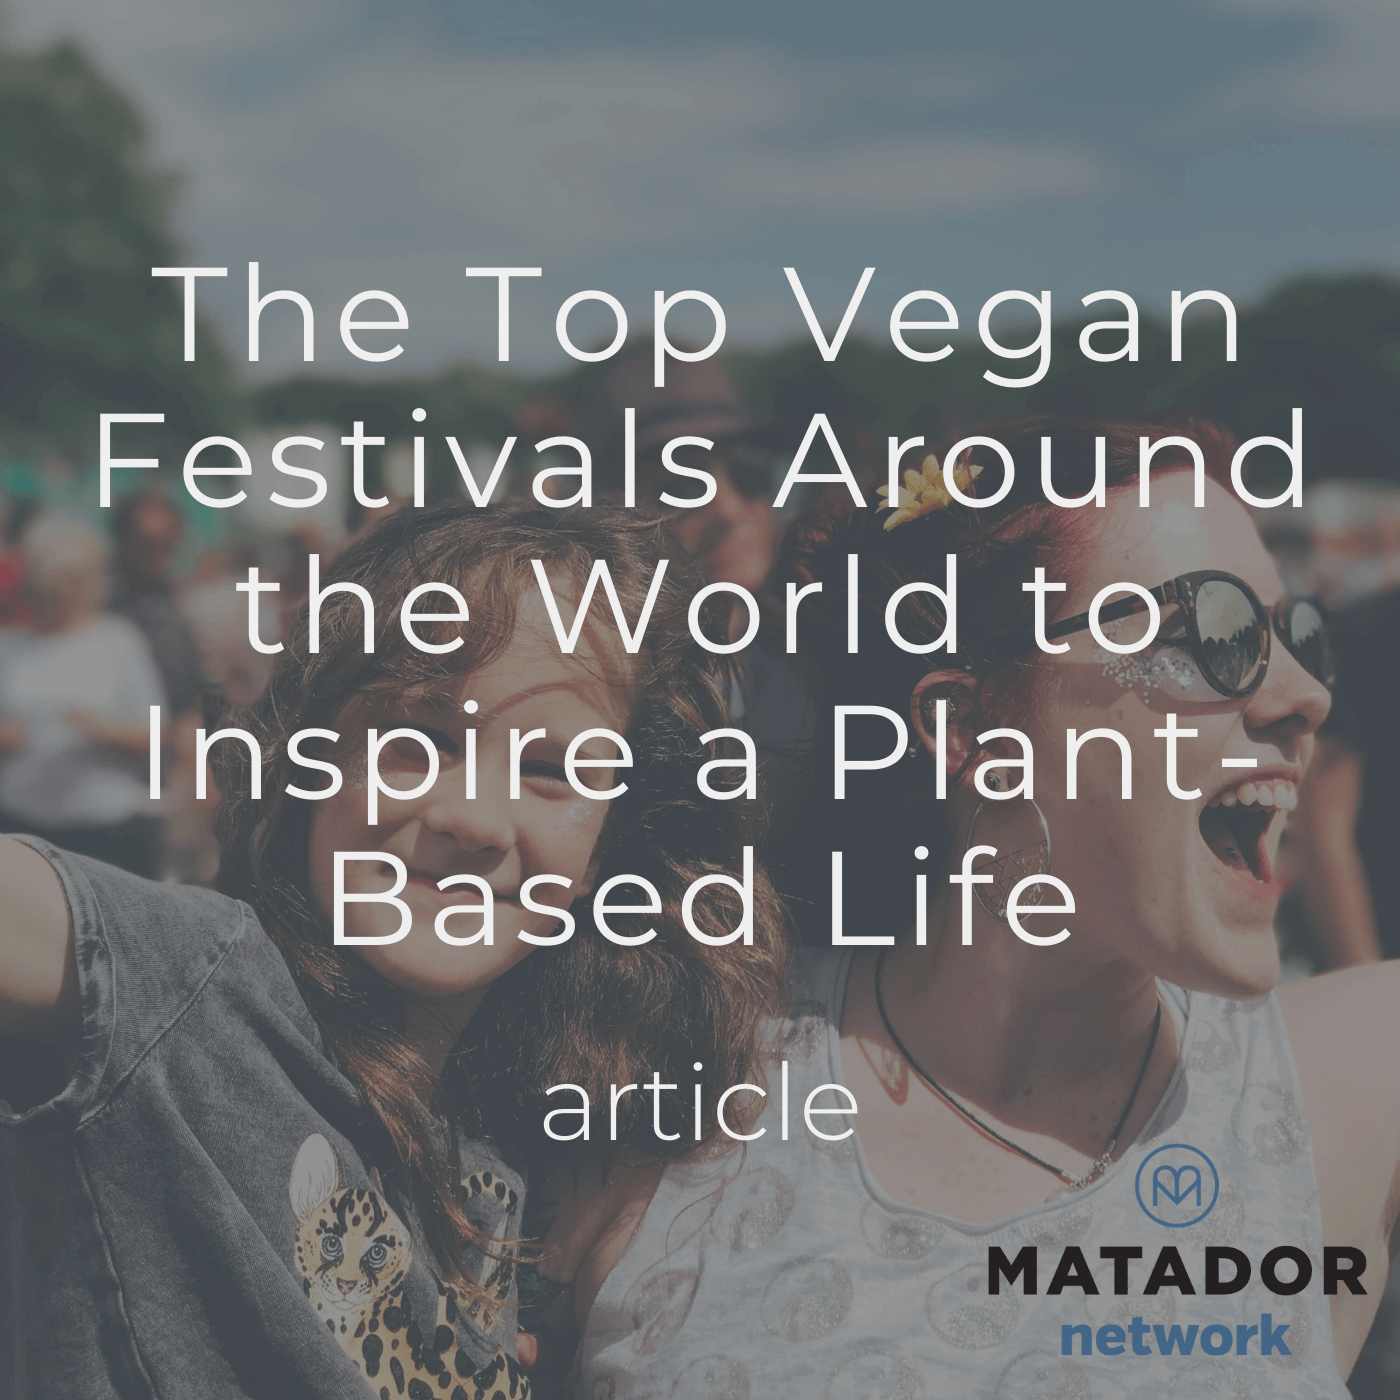 The Top Vegan Festivals Around the World to Inspire a Plant-Based Life